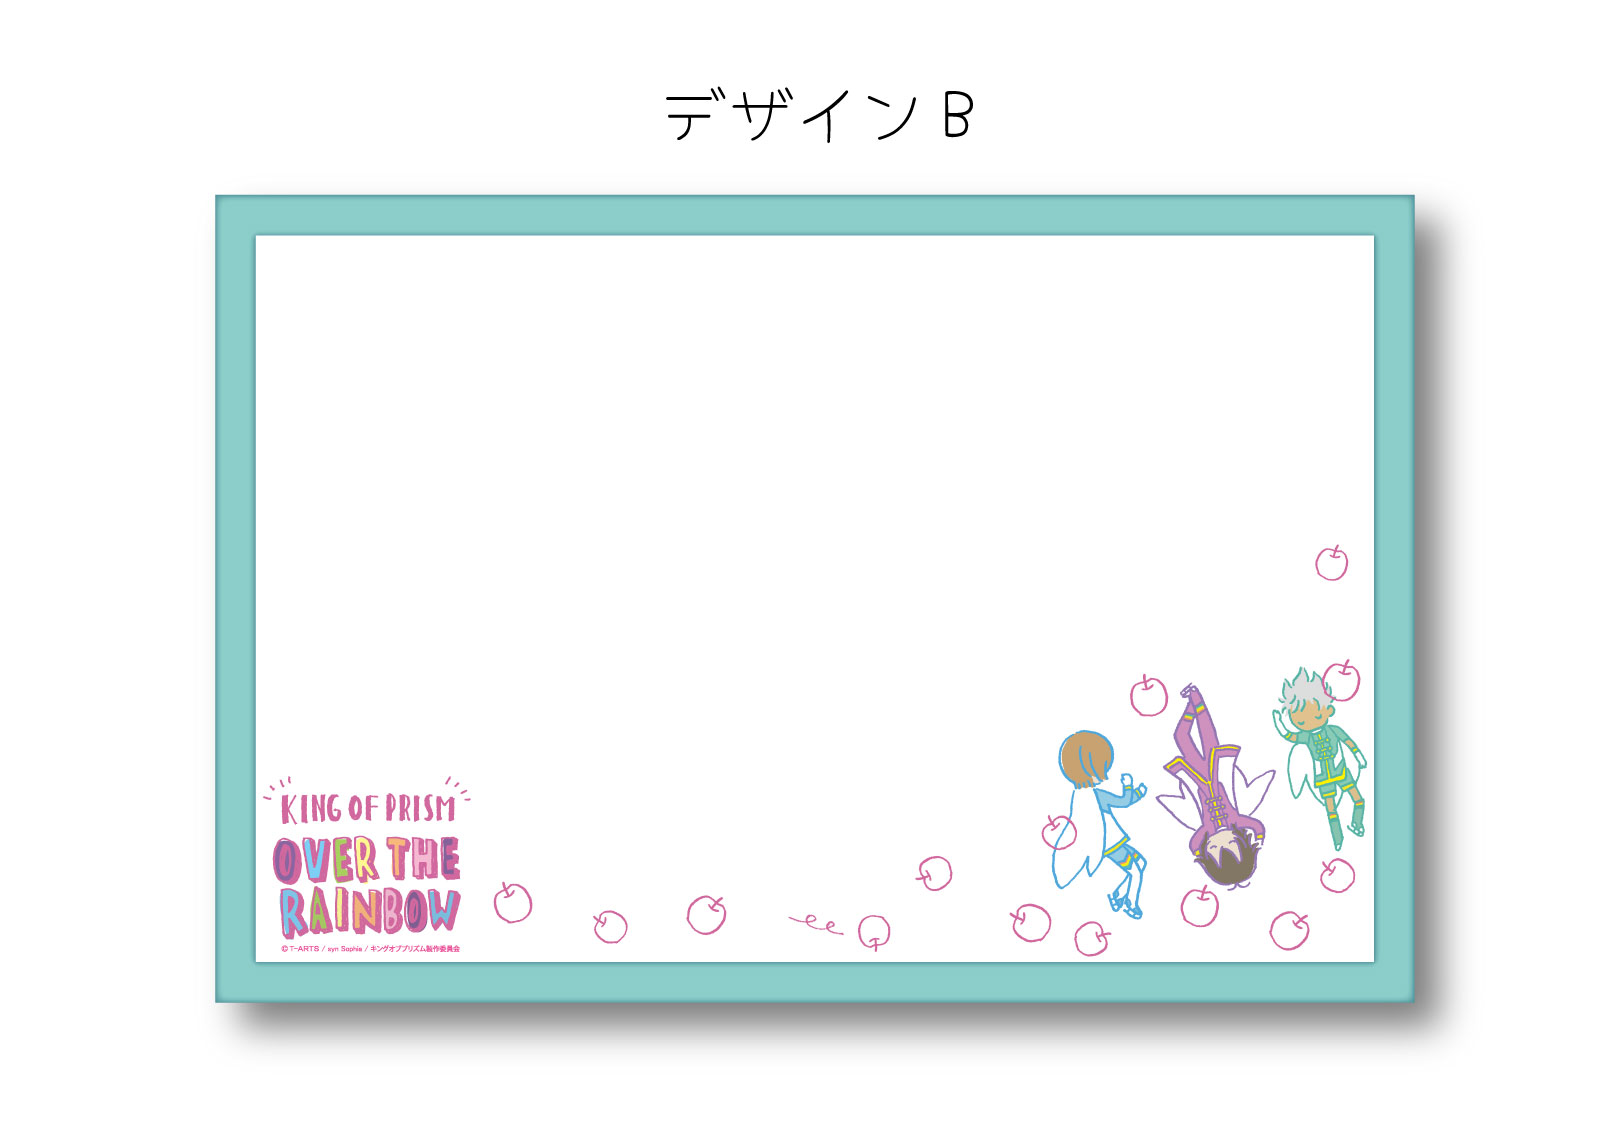 「KING OF PRISM OVER THE RAINBOW」ホワイトボード